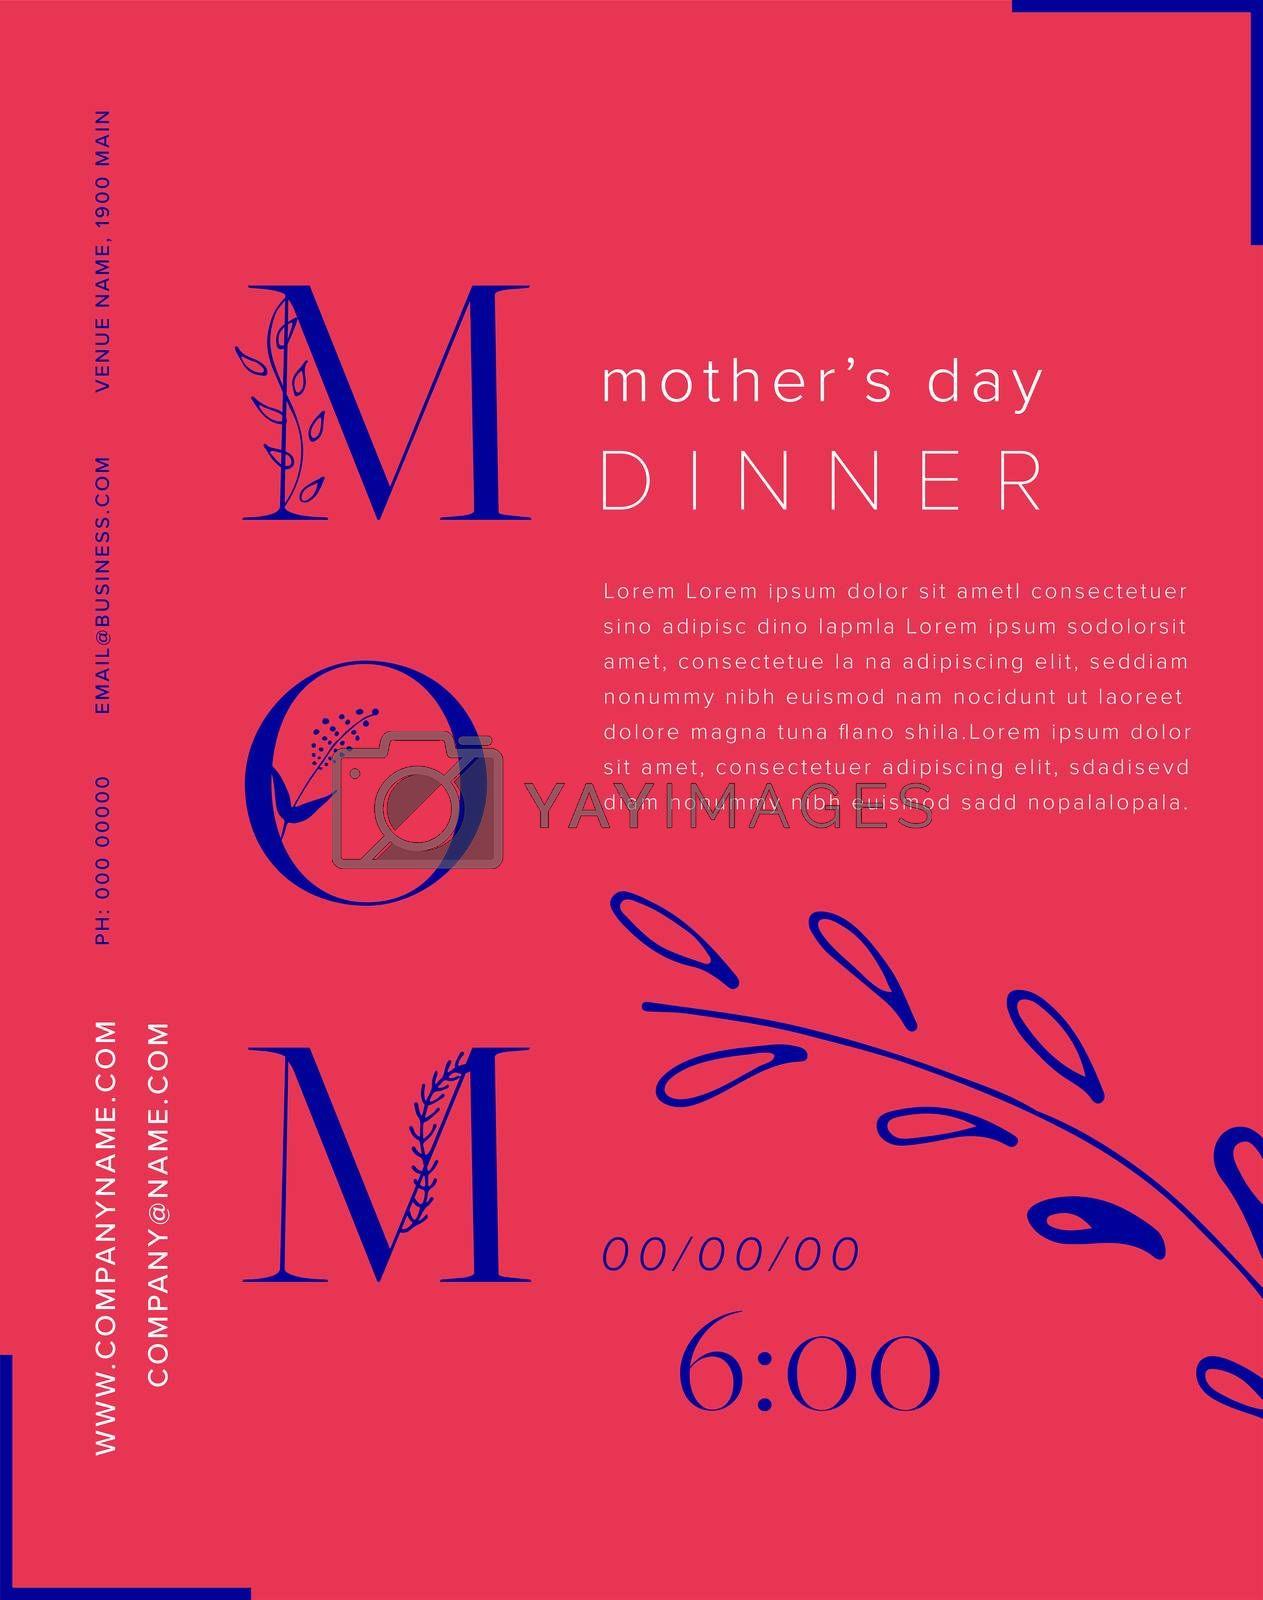 Vector of mothers day card with message